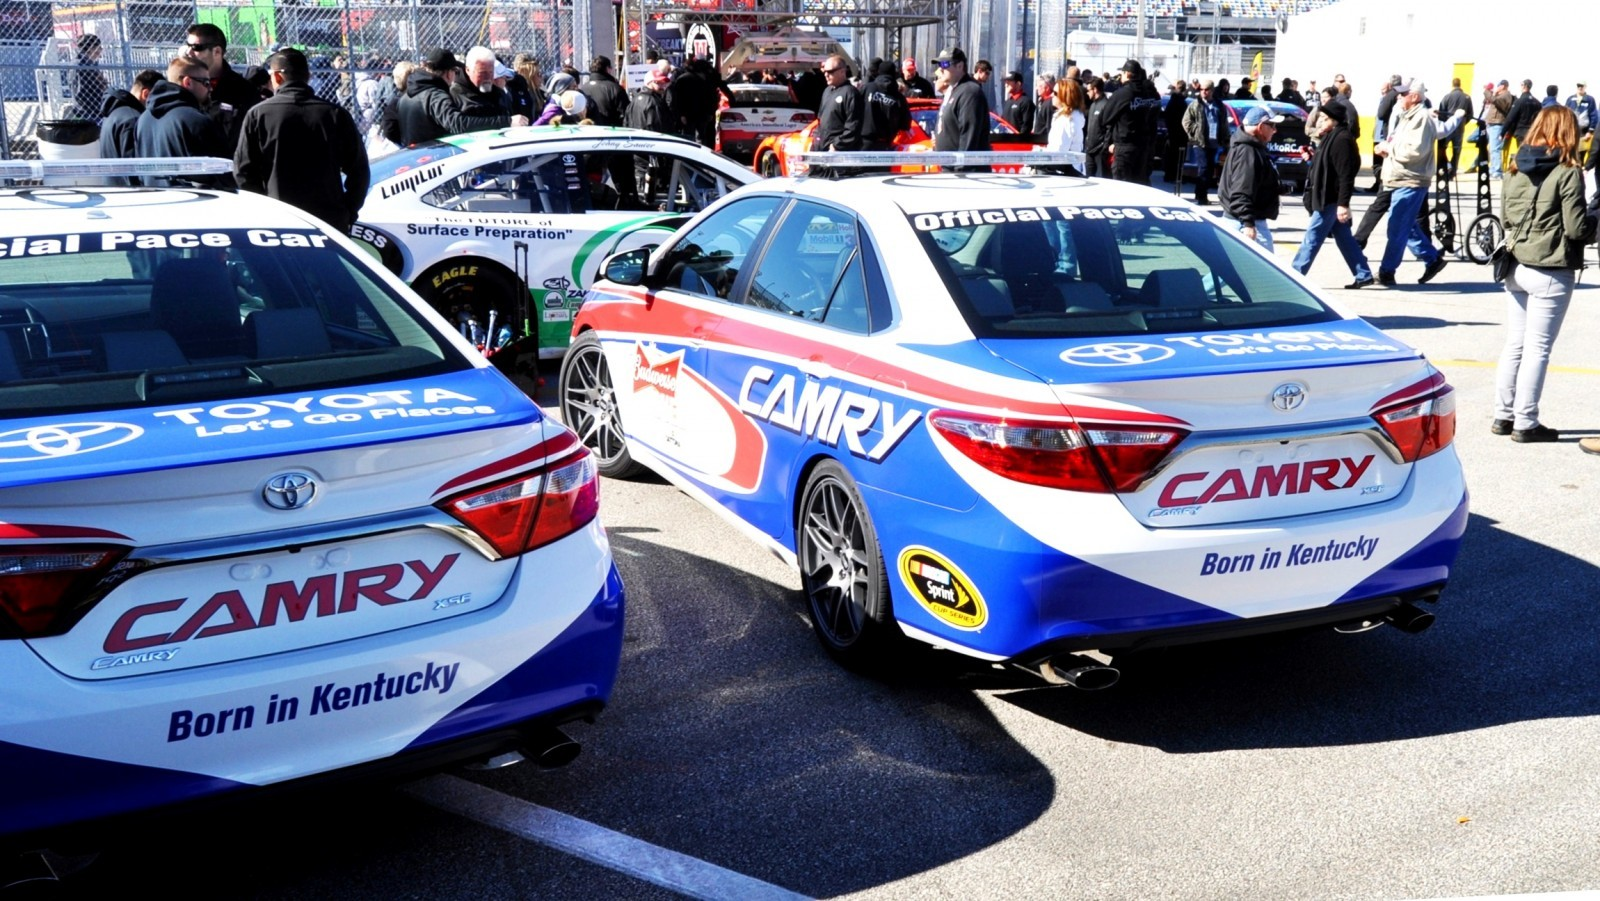 2015 Toyota Camry - DAYTONA 500 Official Pace Car 18